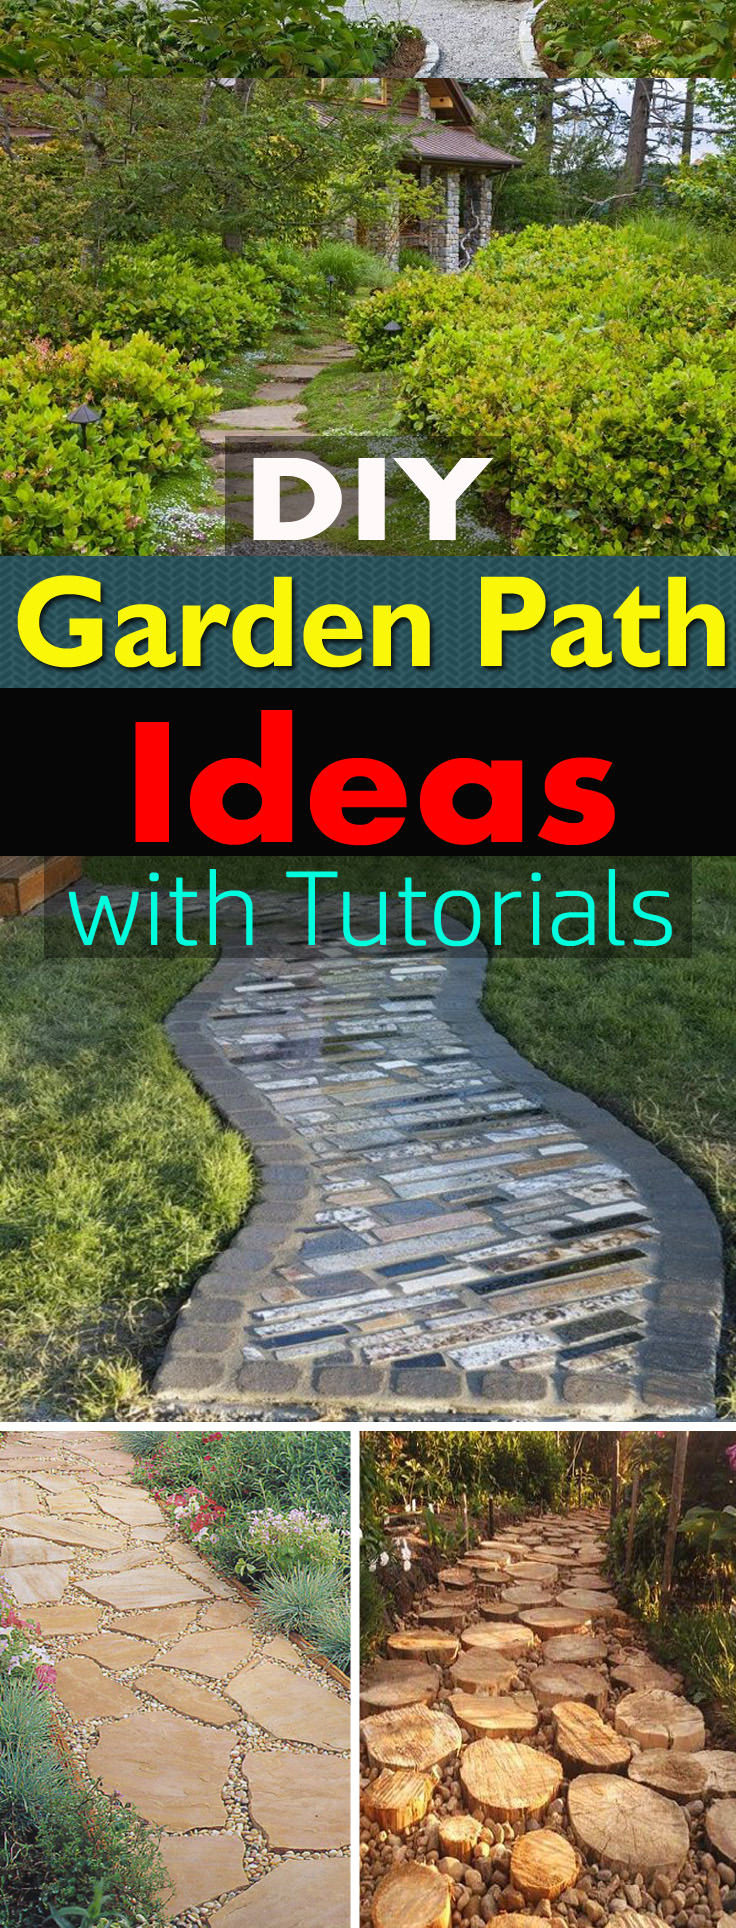 Take Inspiration From The 19 Diy Garden Path Ideas Available Here With Step By